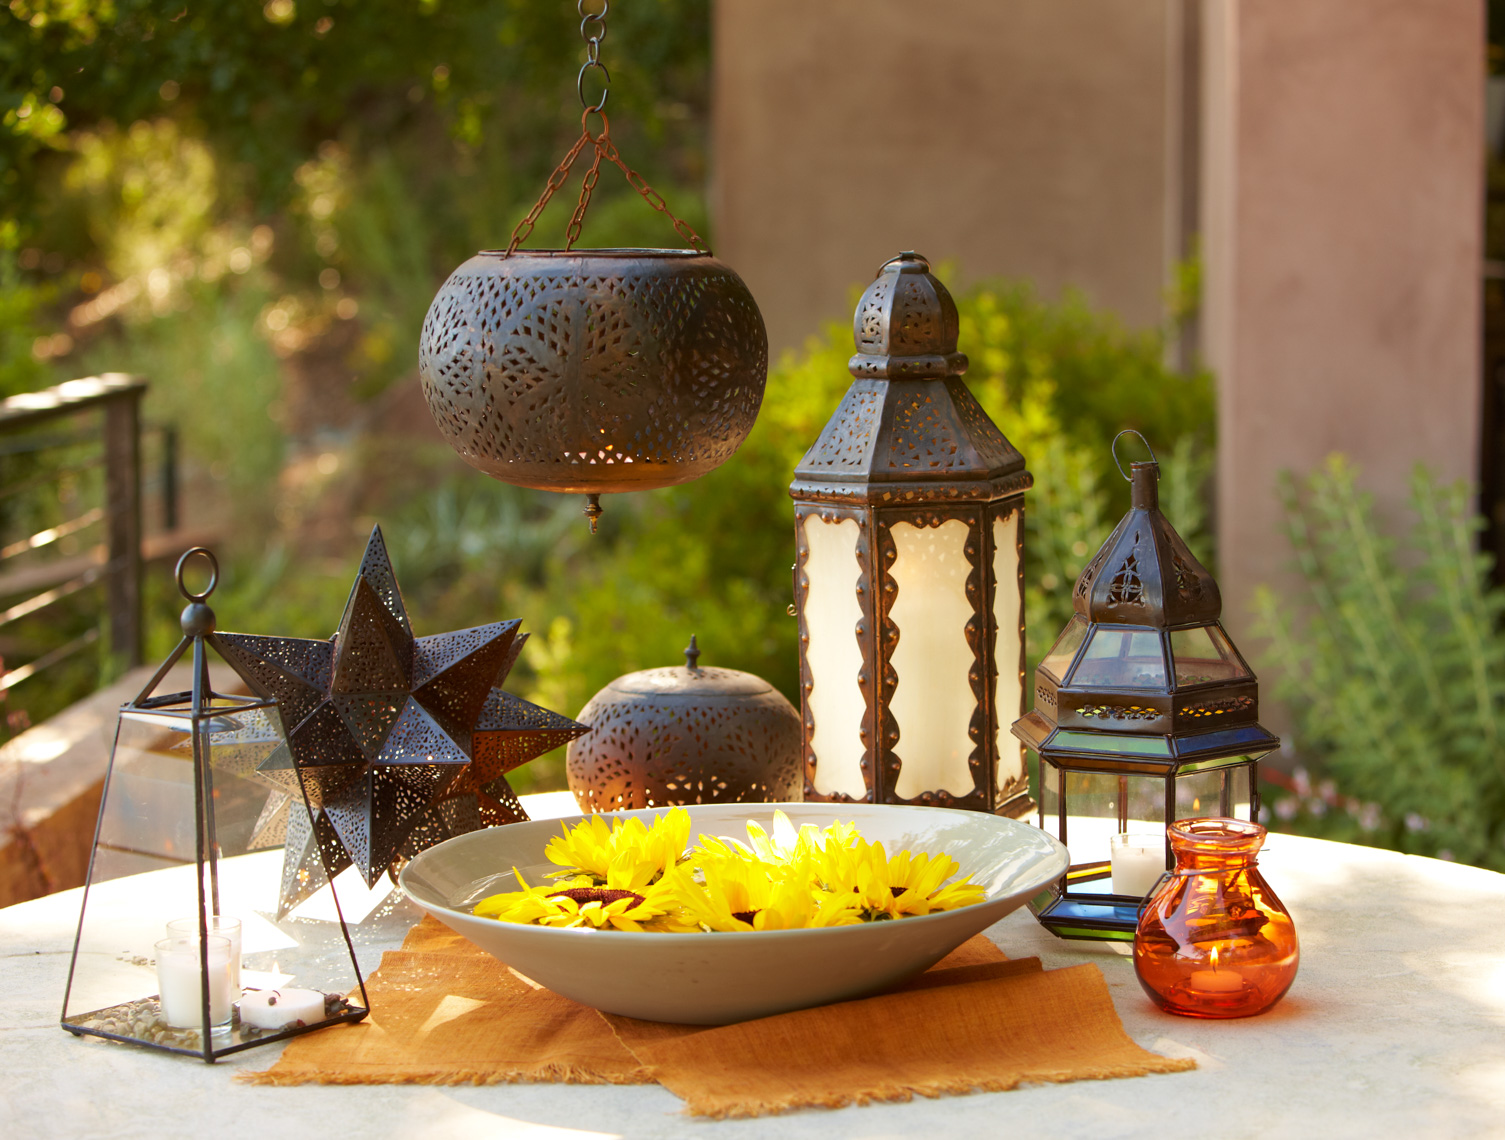 Moroccan lantern collection with yellow sunflowers in ceramic bowl San Francisco lifestyle photographer